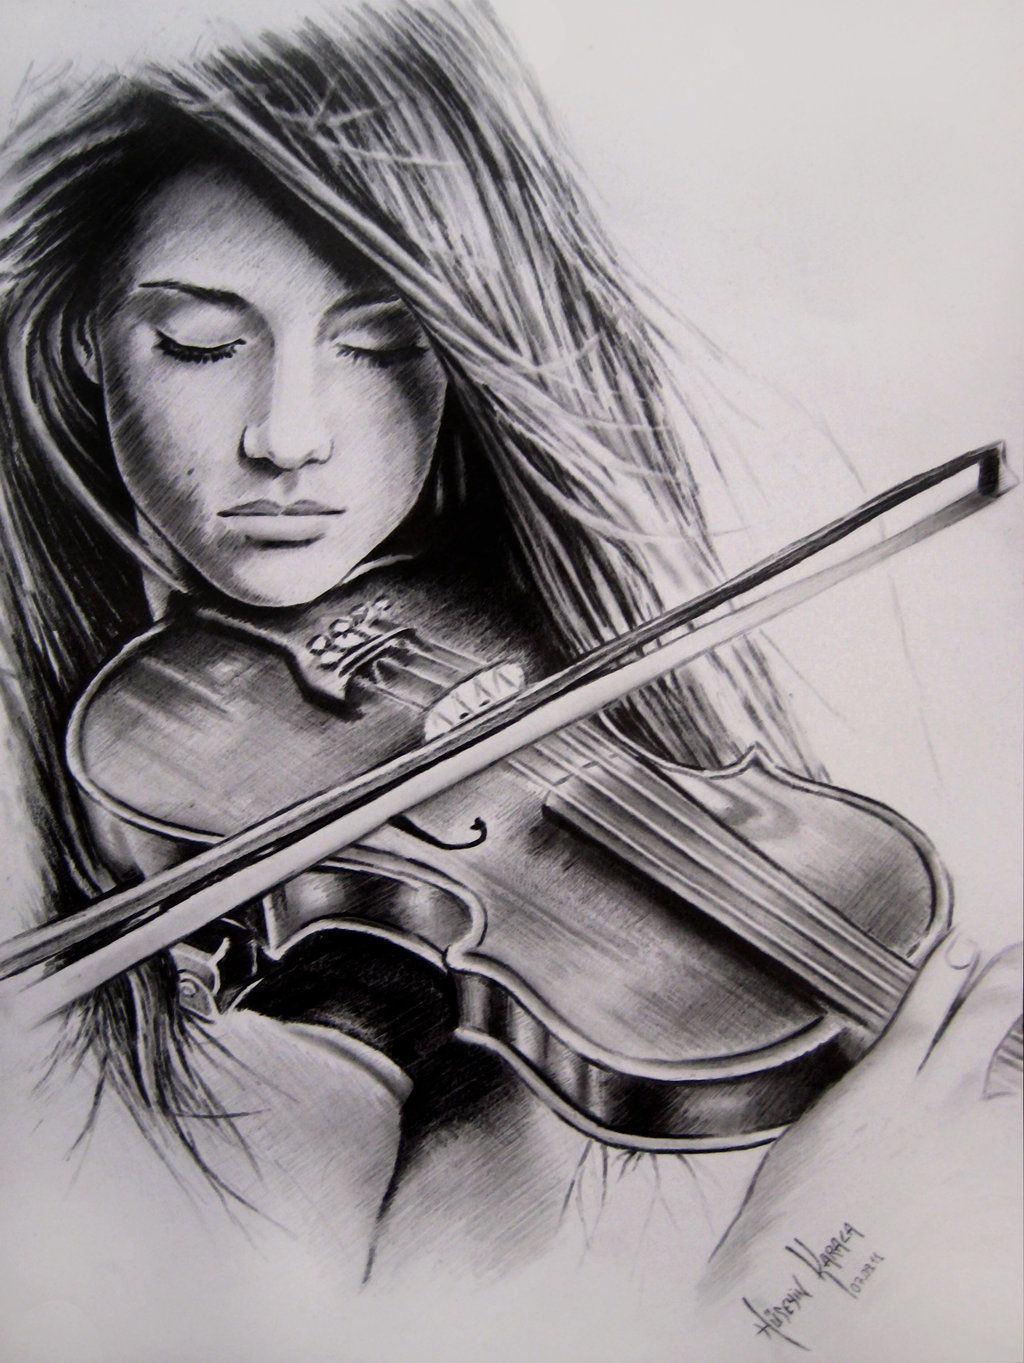 Girl playing violin sketch google search